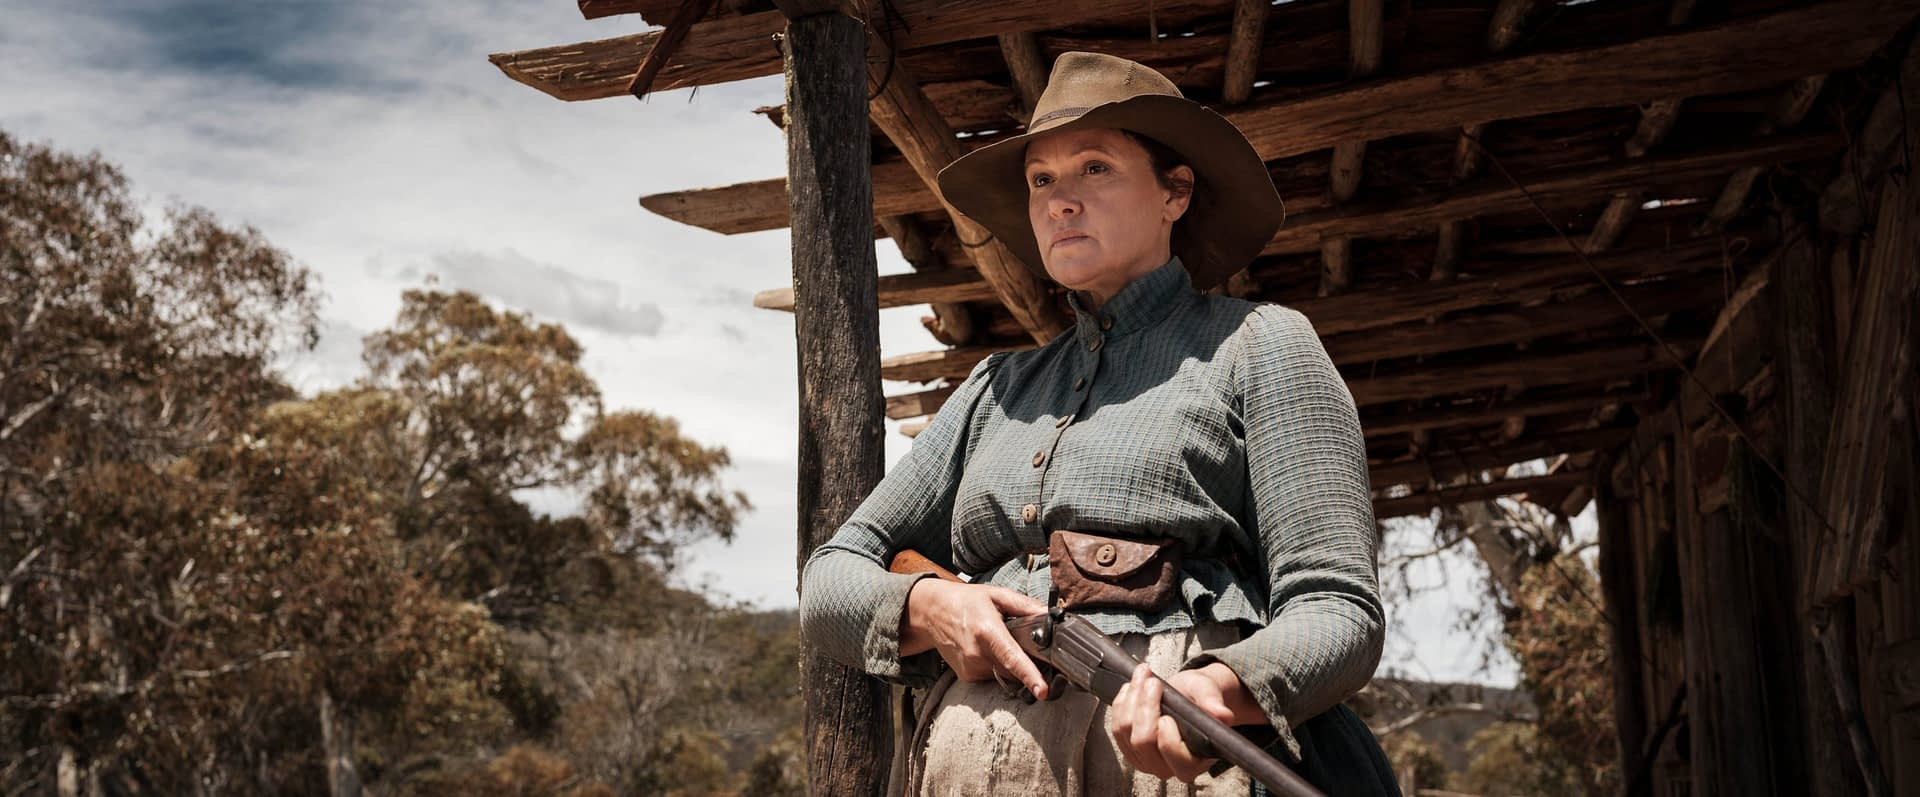 Leah Purcell   The Drover's Wife